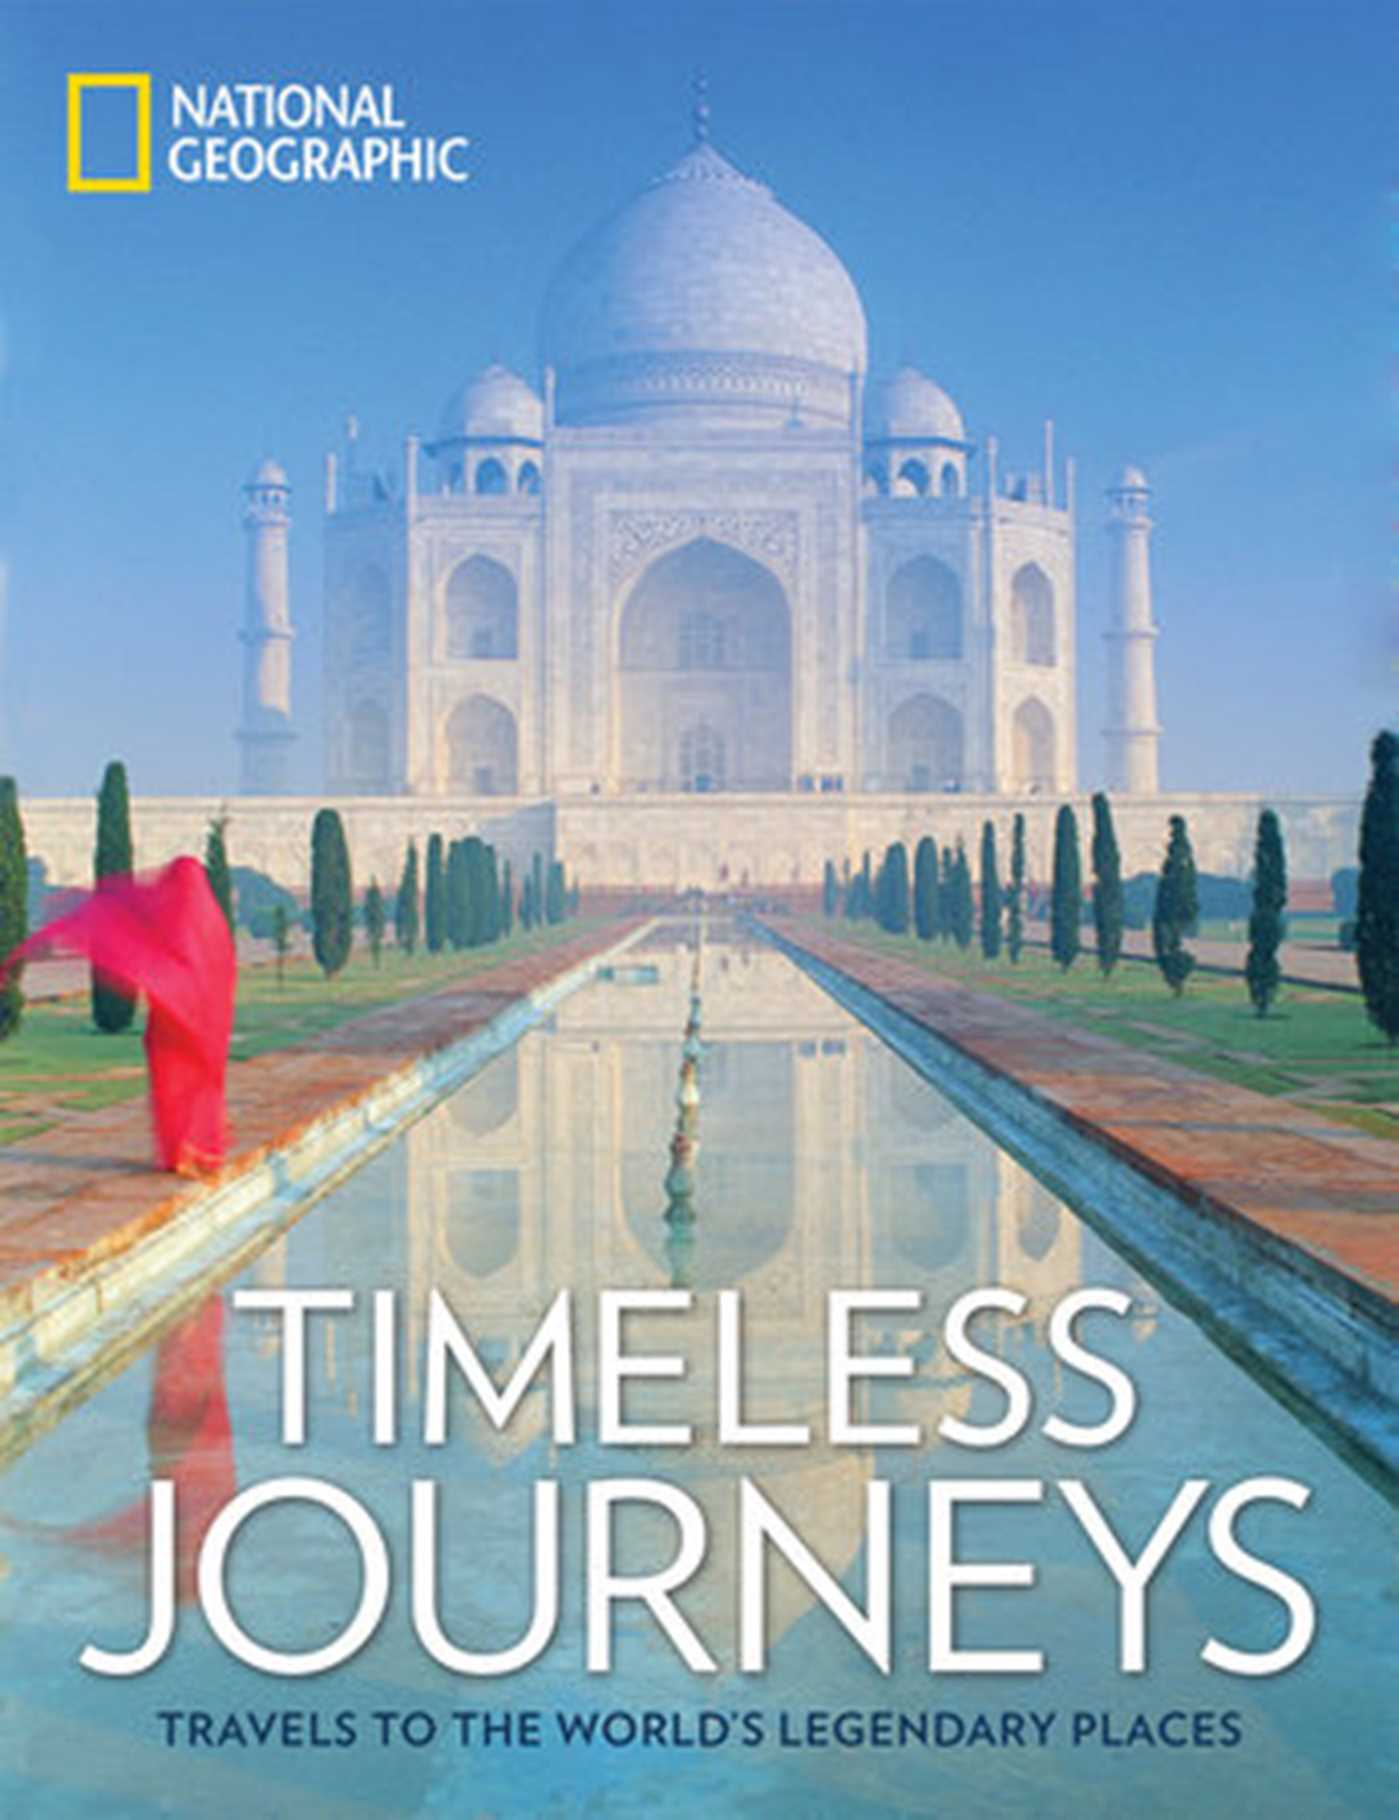 Timeless journeys travels to the worlds legendary places 9781426218439 hr